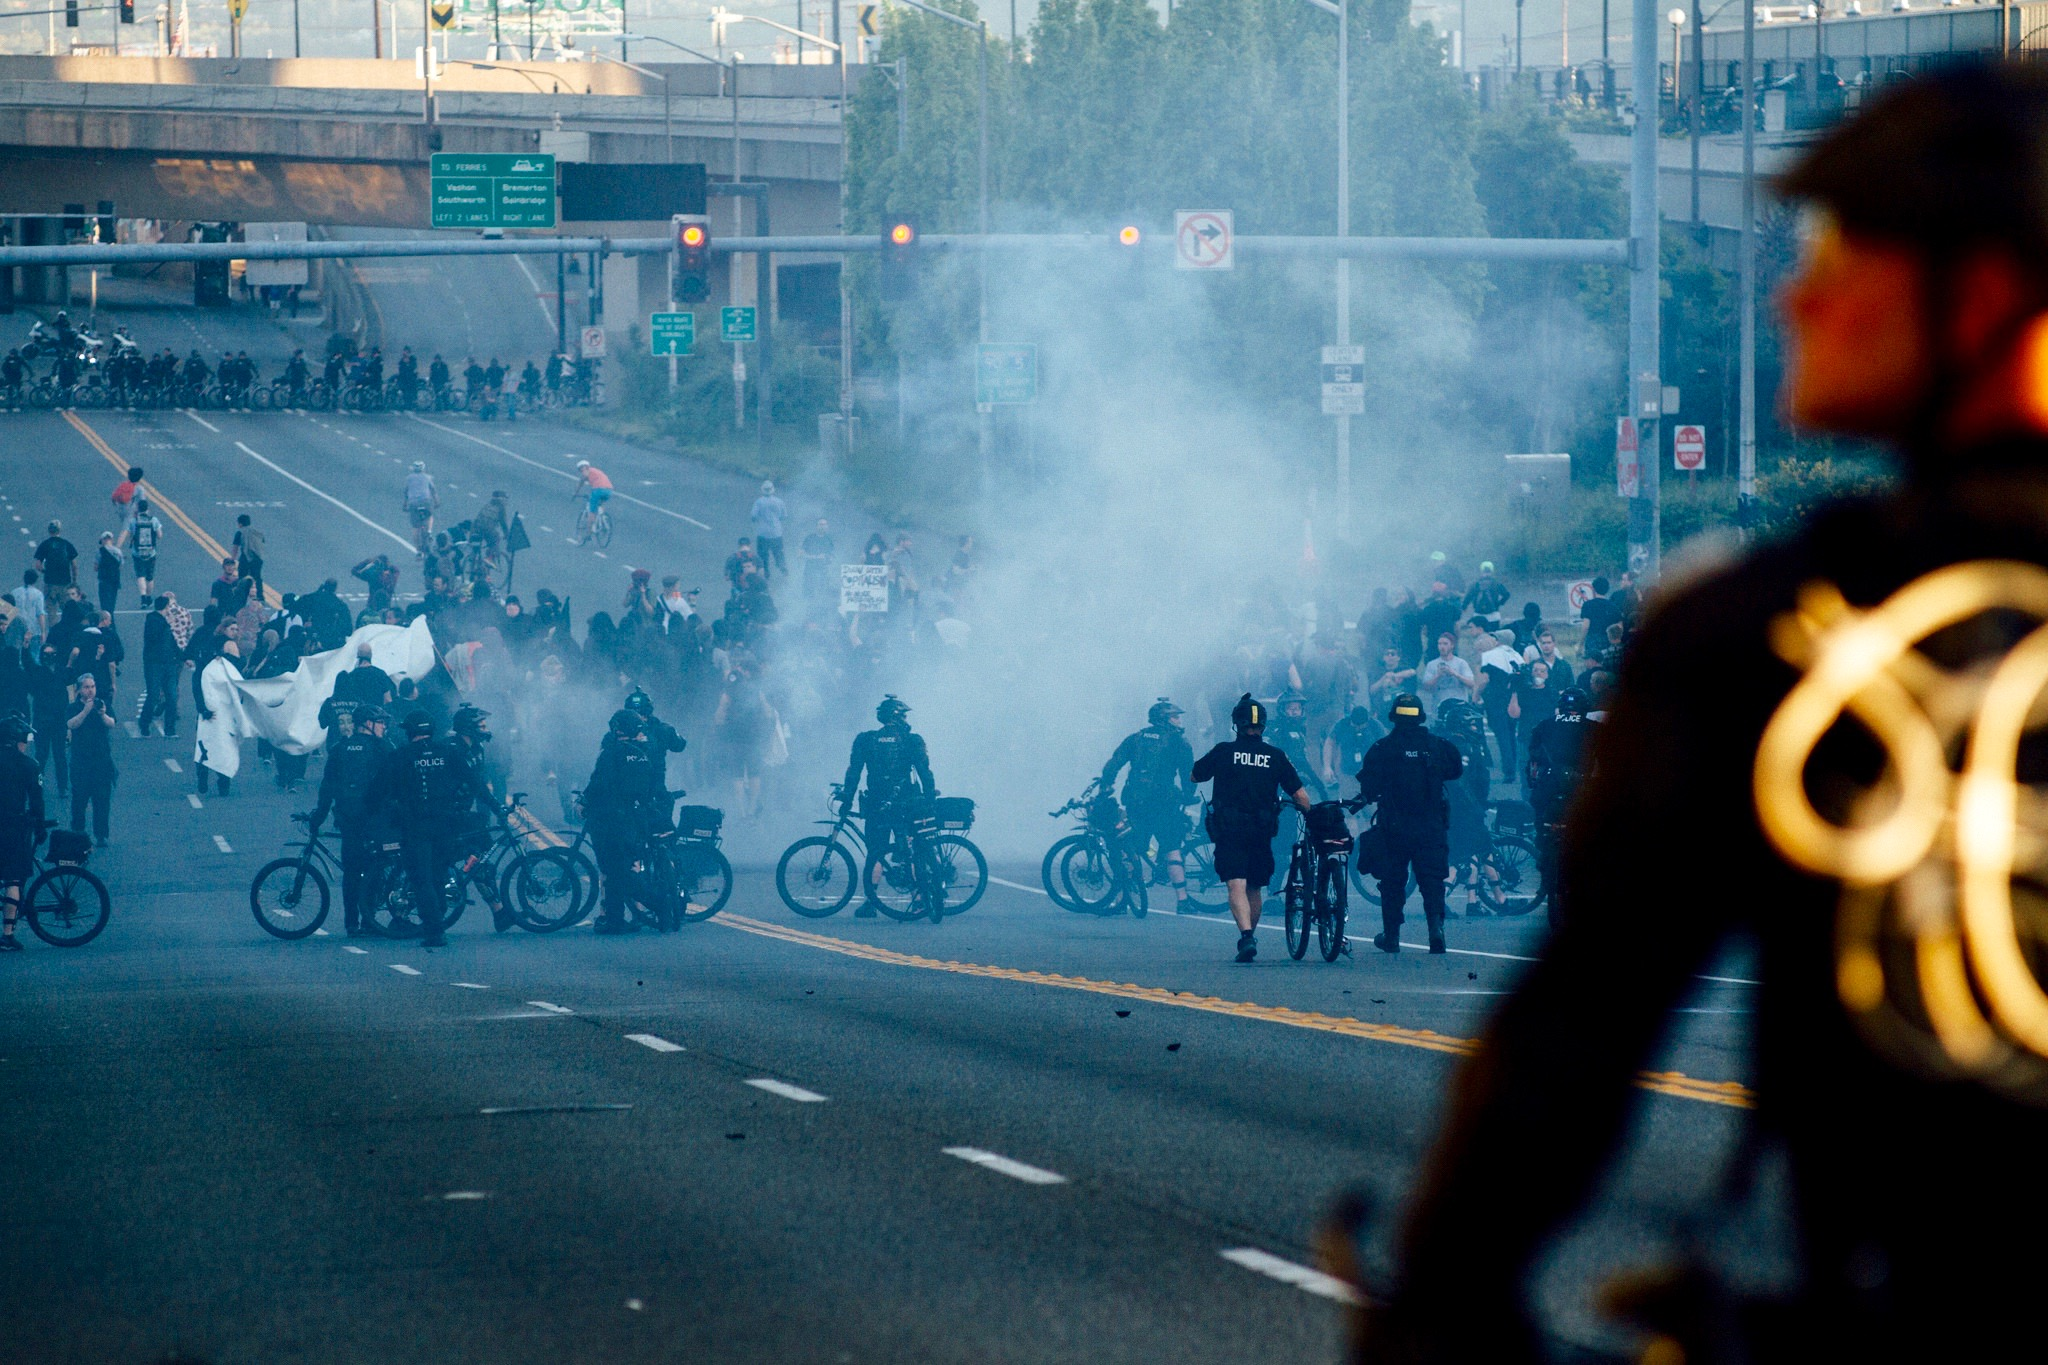 police tear gas protest (1)